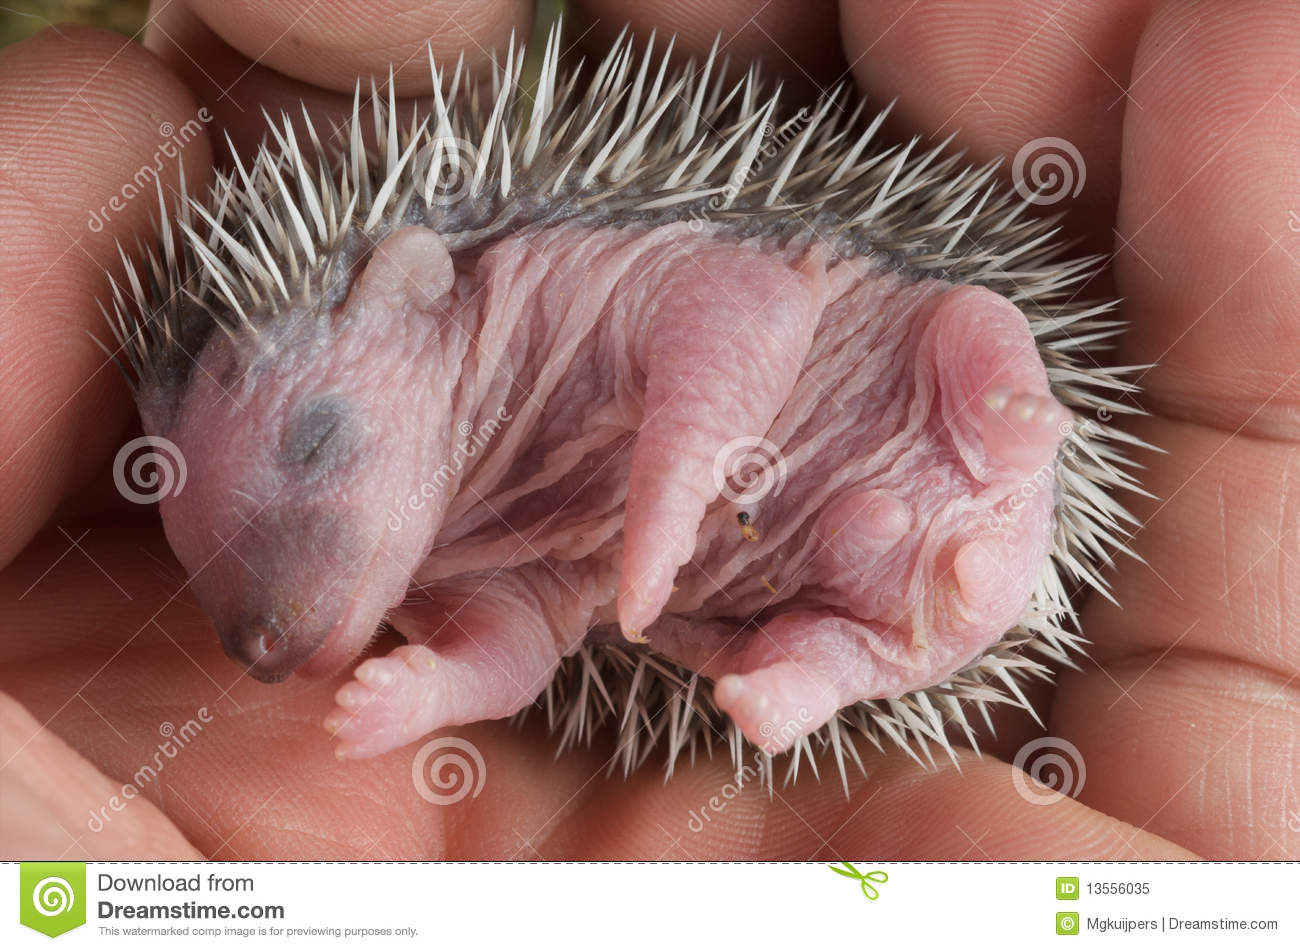 What do baby hedgehogs look like